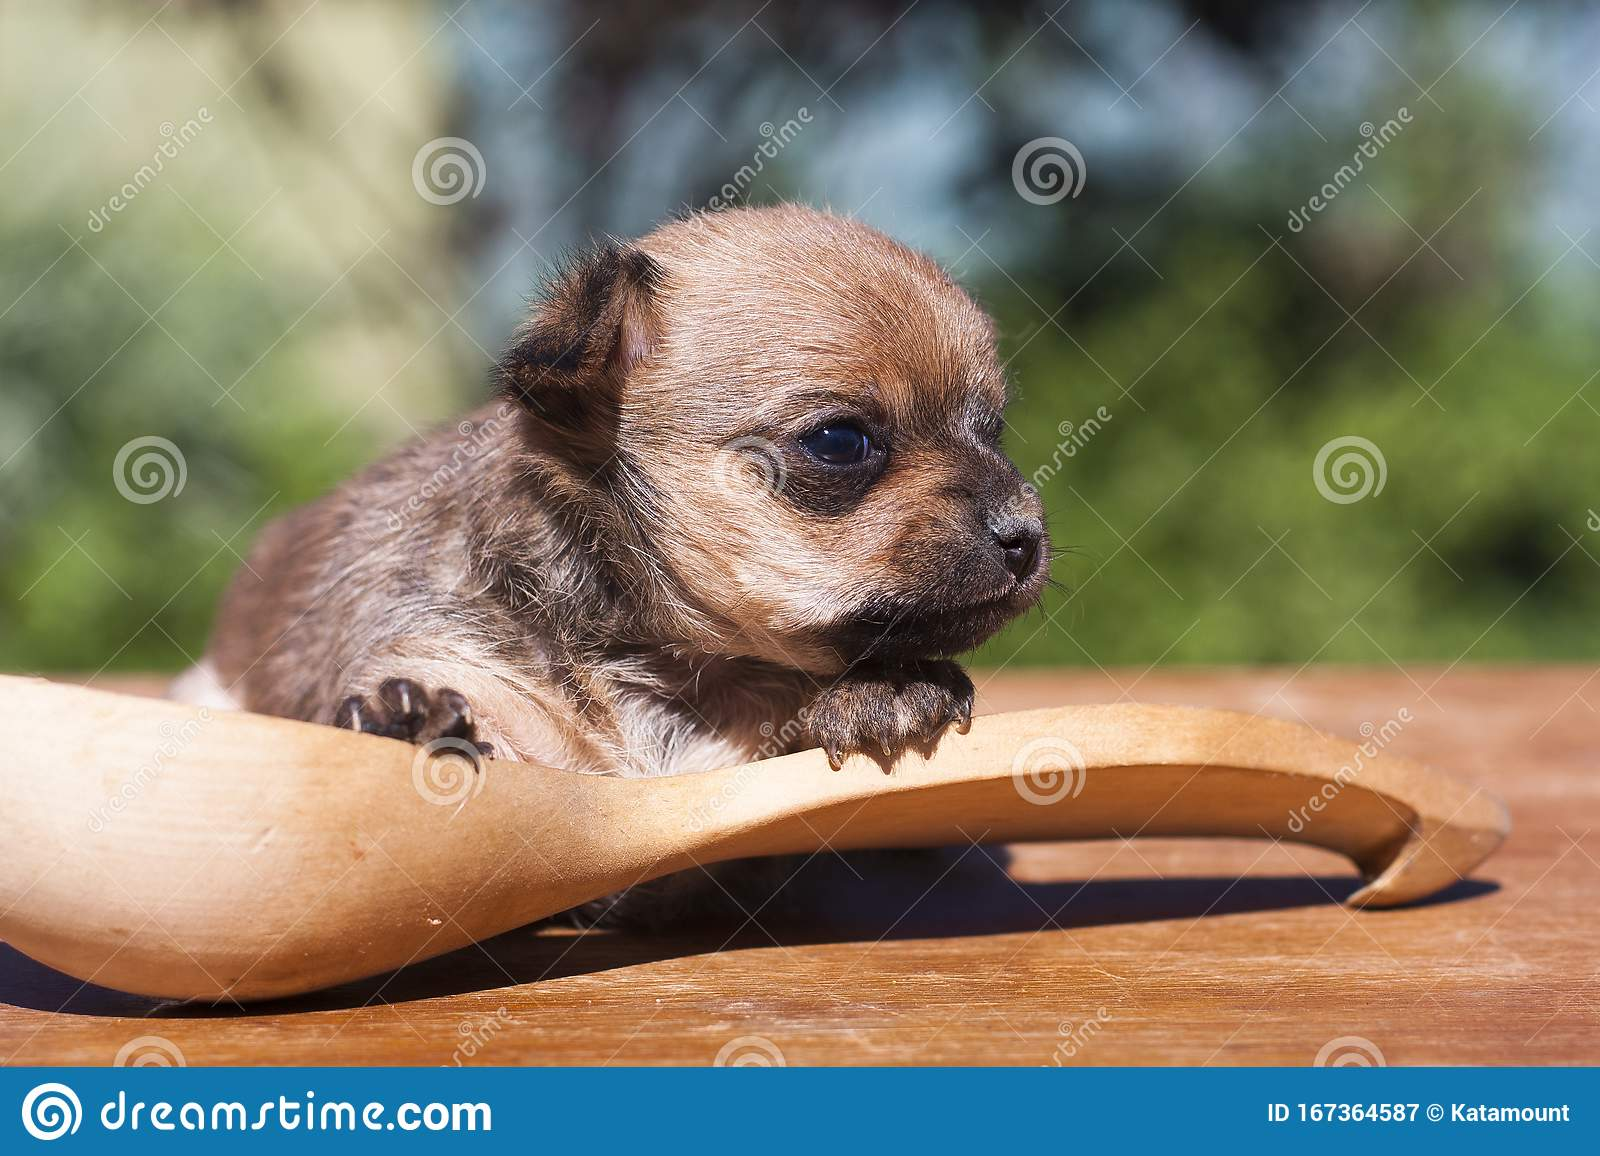 Chihuahua Puppy In A Large Wooden Spoon Stock Image Image Of Looks Green 167364587